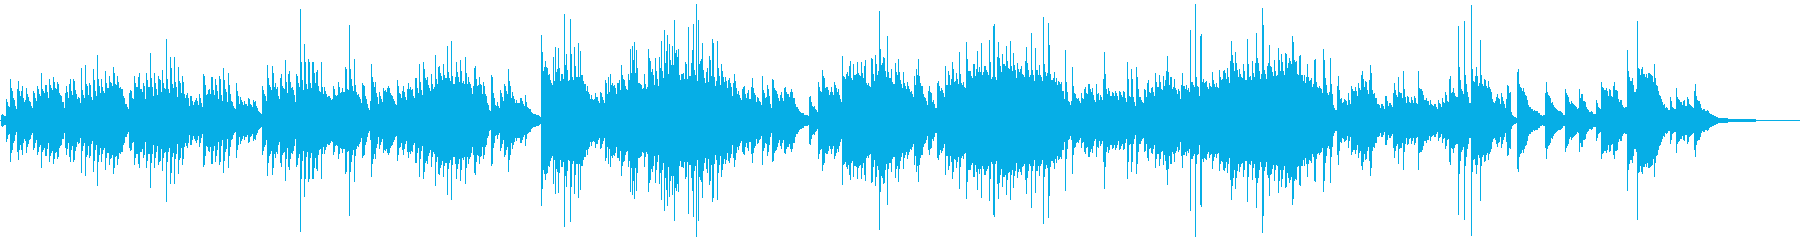 Pretty and cheerful piano ballad's reproduced waveform